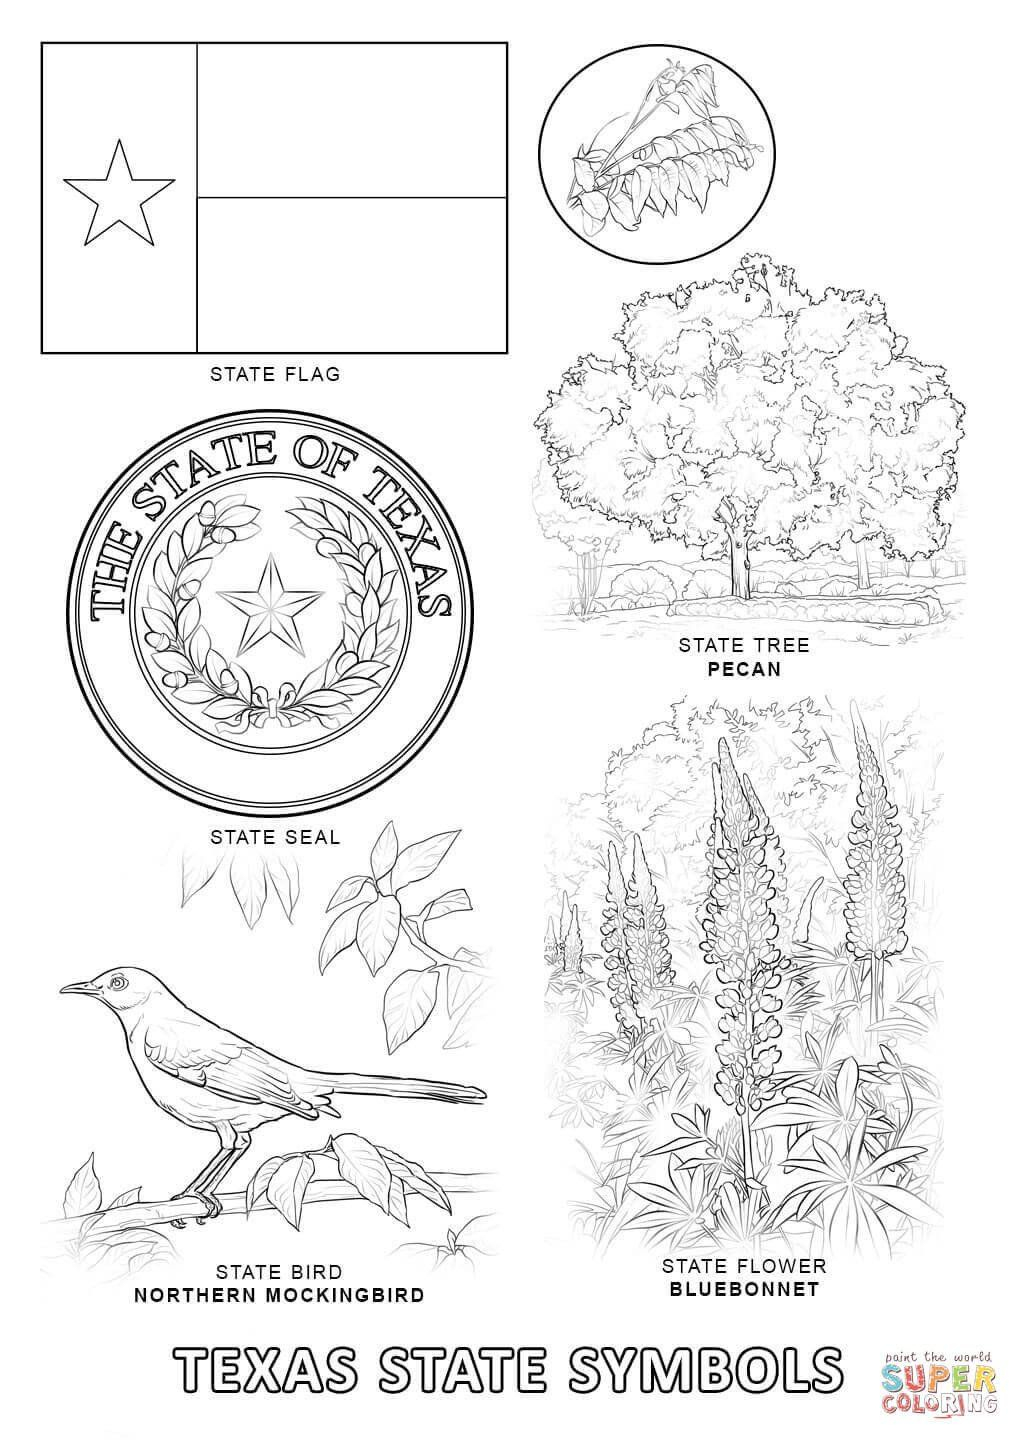 World Flags Coloring Pages Texas State Symbols Coloring Page In 2020 Flag Coloring Pages Flower Coloring Pages Bird Coloring Pages